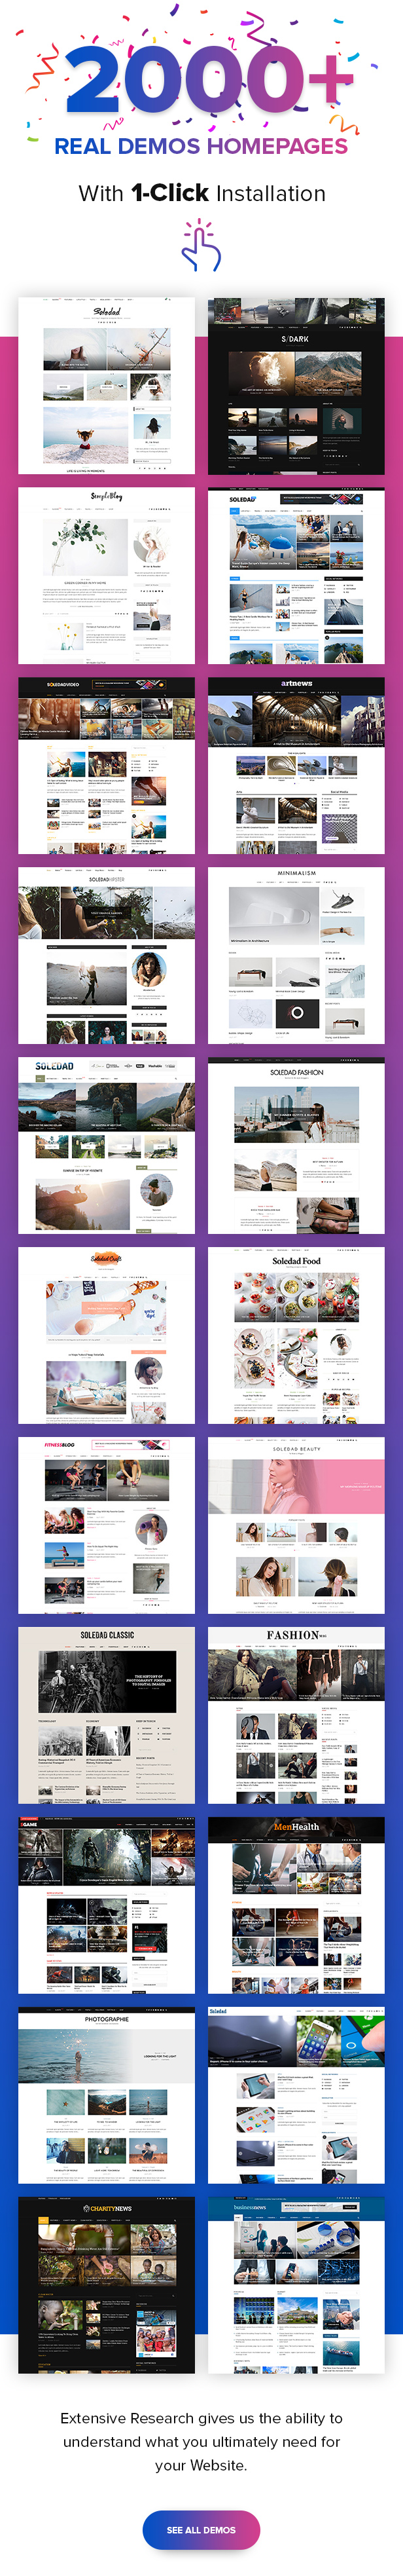 Soledad WordPress Blog Theme  - B1 200Demos2 - Soledad – Multi-Concept Blog/Magazine/News AMP WordPress Theme